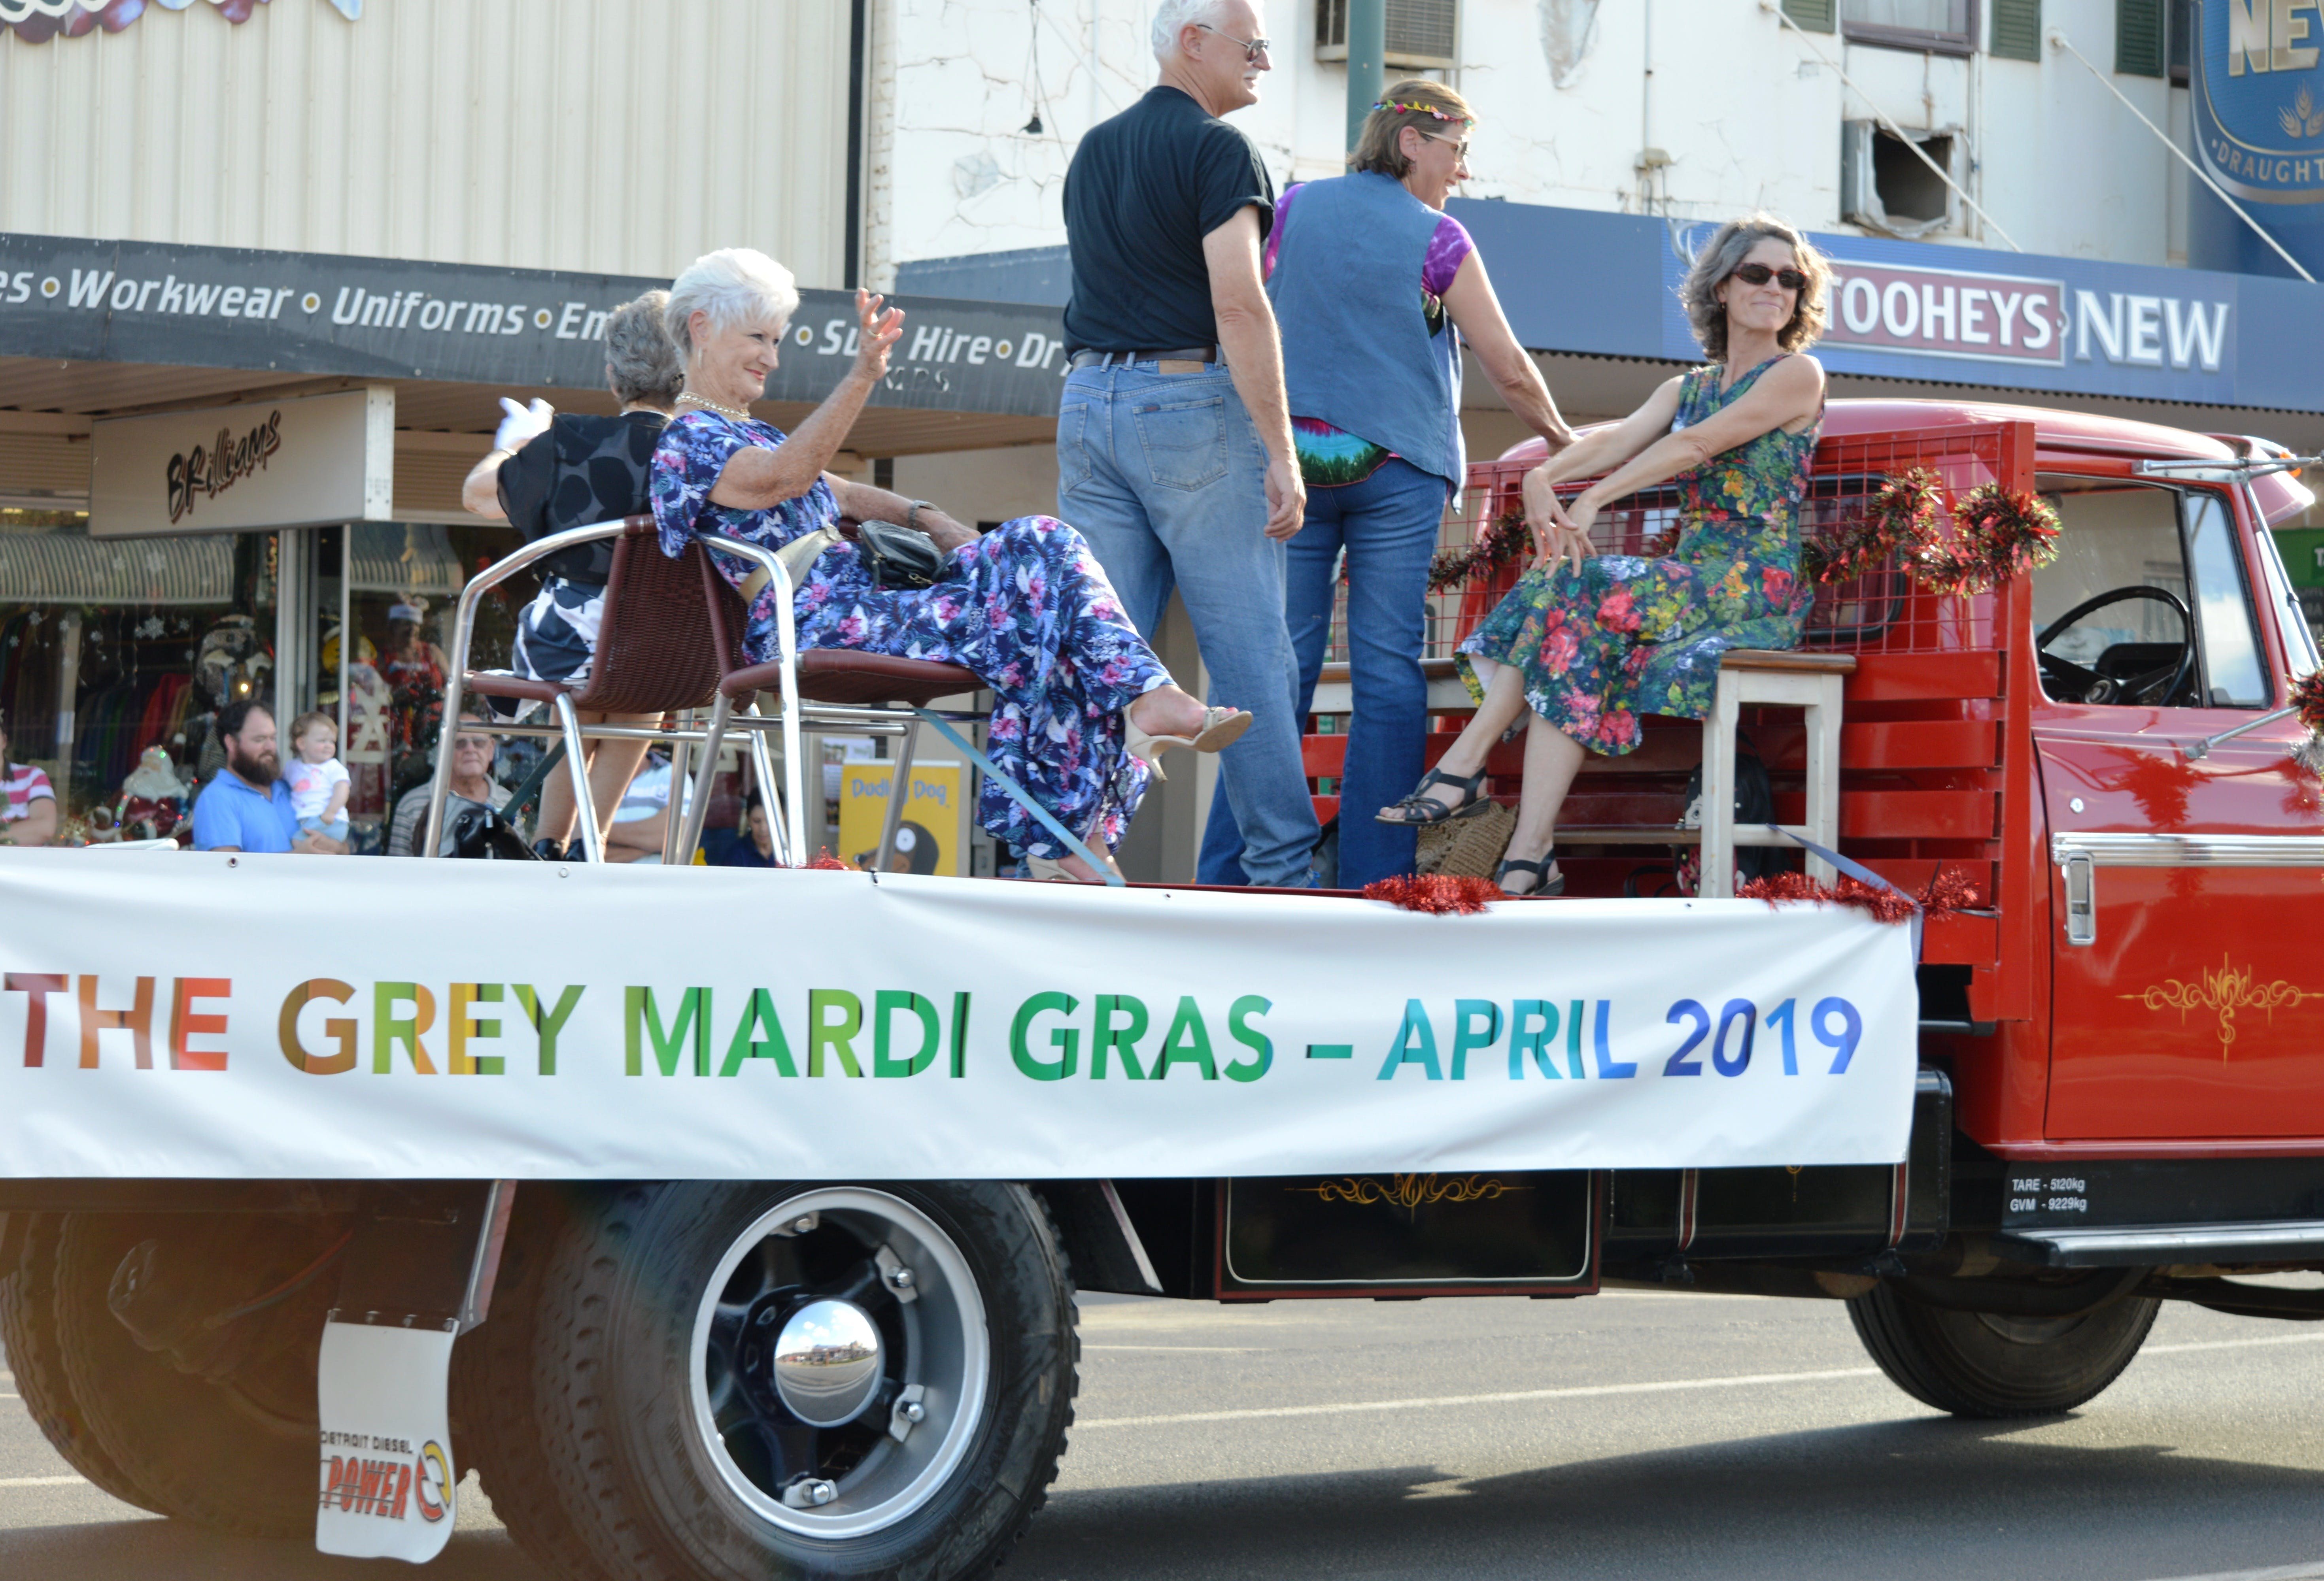 The Grey Mardi Gras - ACT Tourism